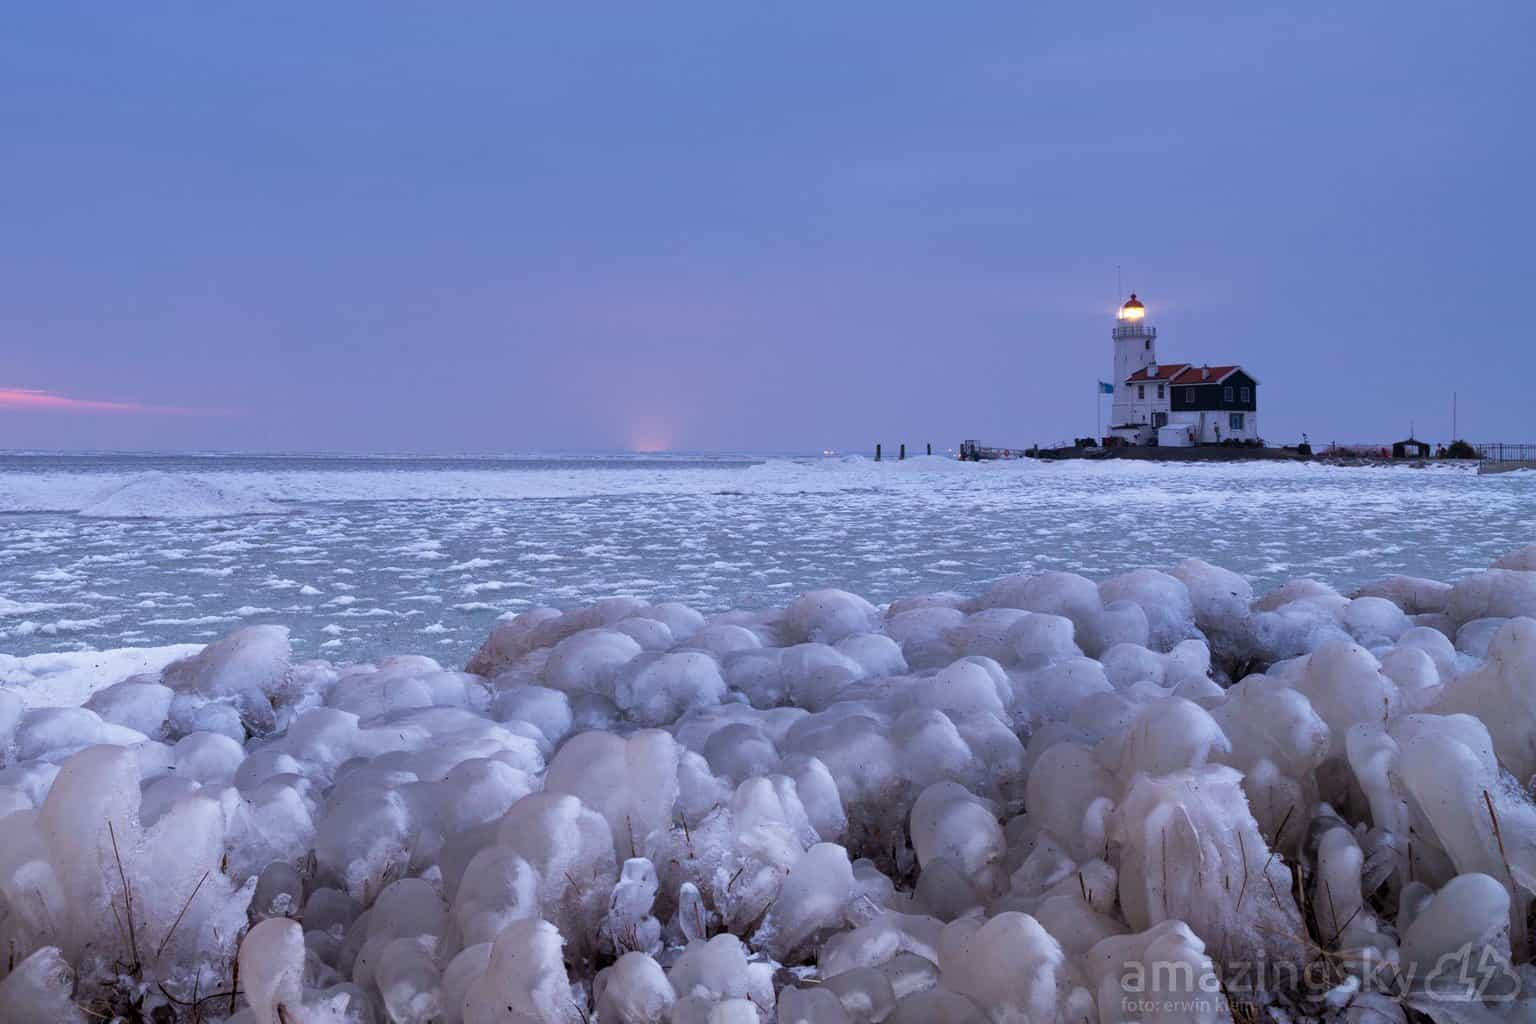 The old lighthouse 'Paard van Marken' today. Beautiful ice sculptures!  March 3, 2018. Marken, The Netherlands.